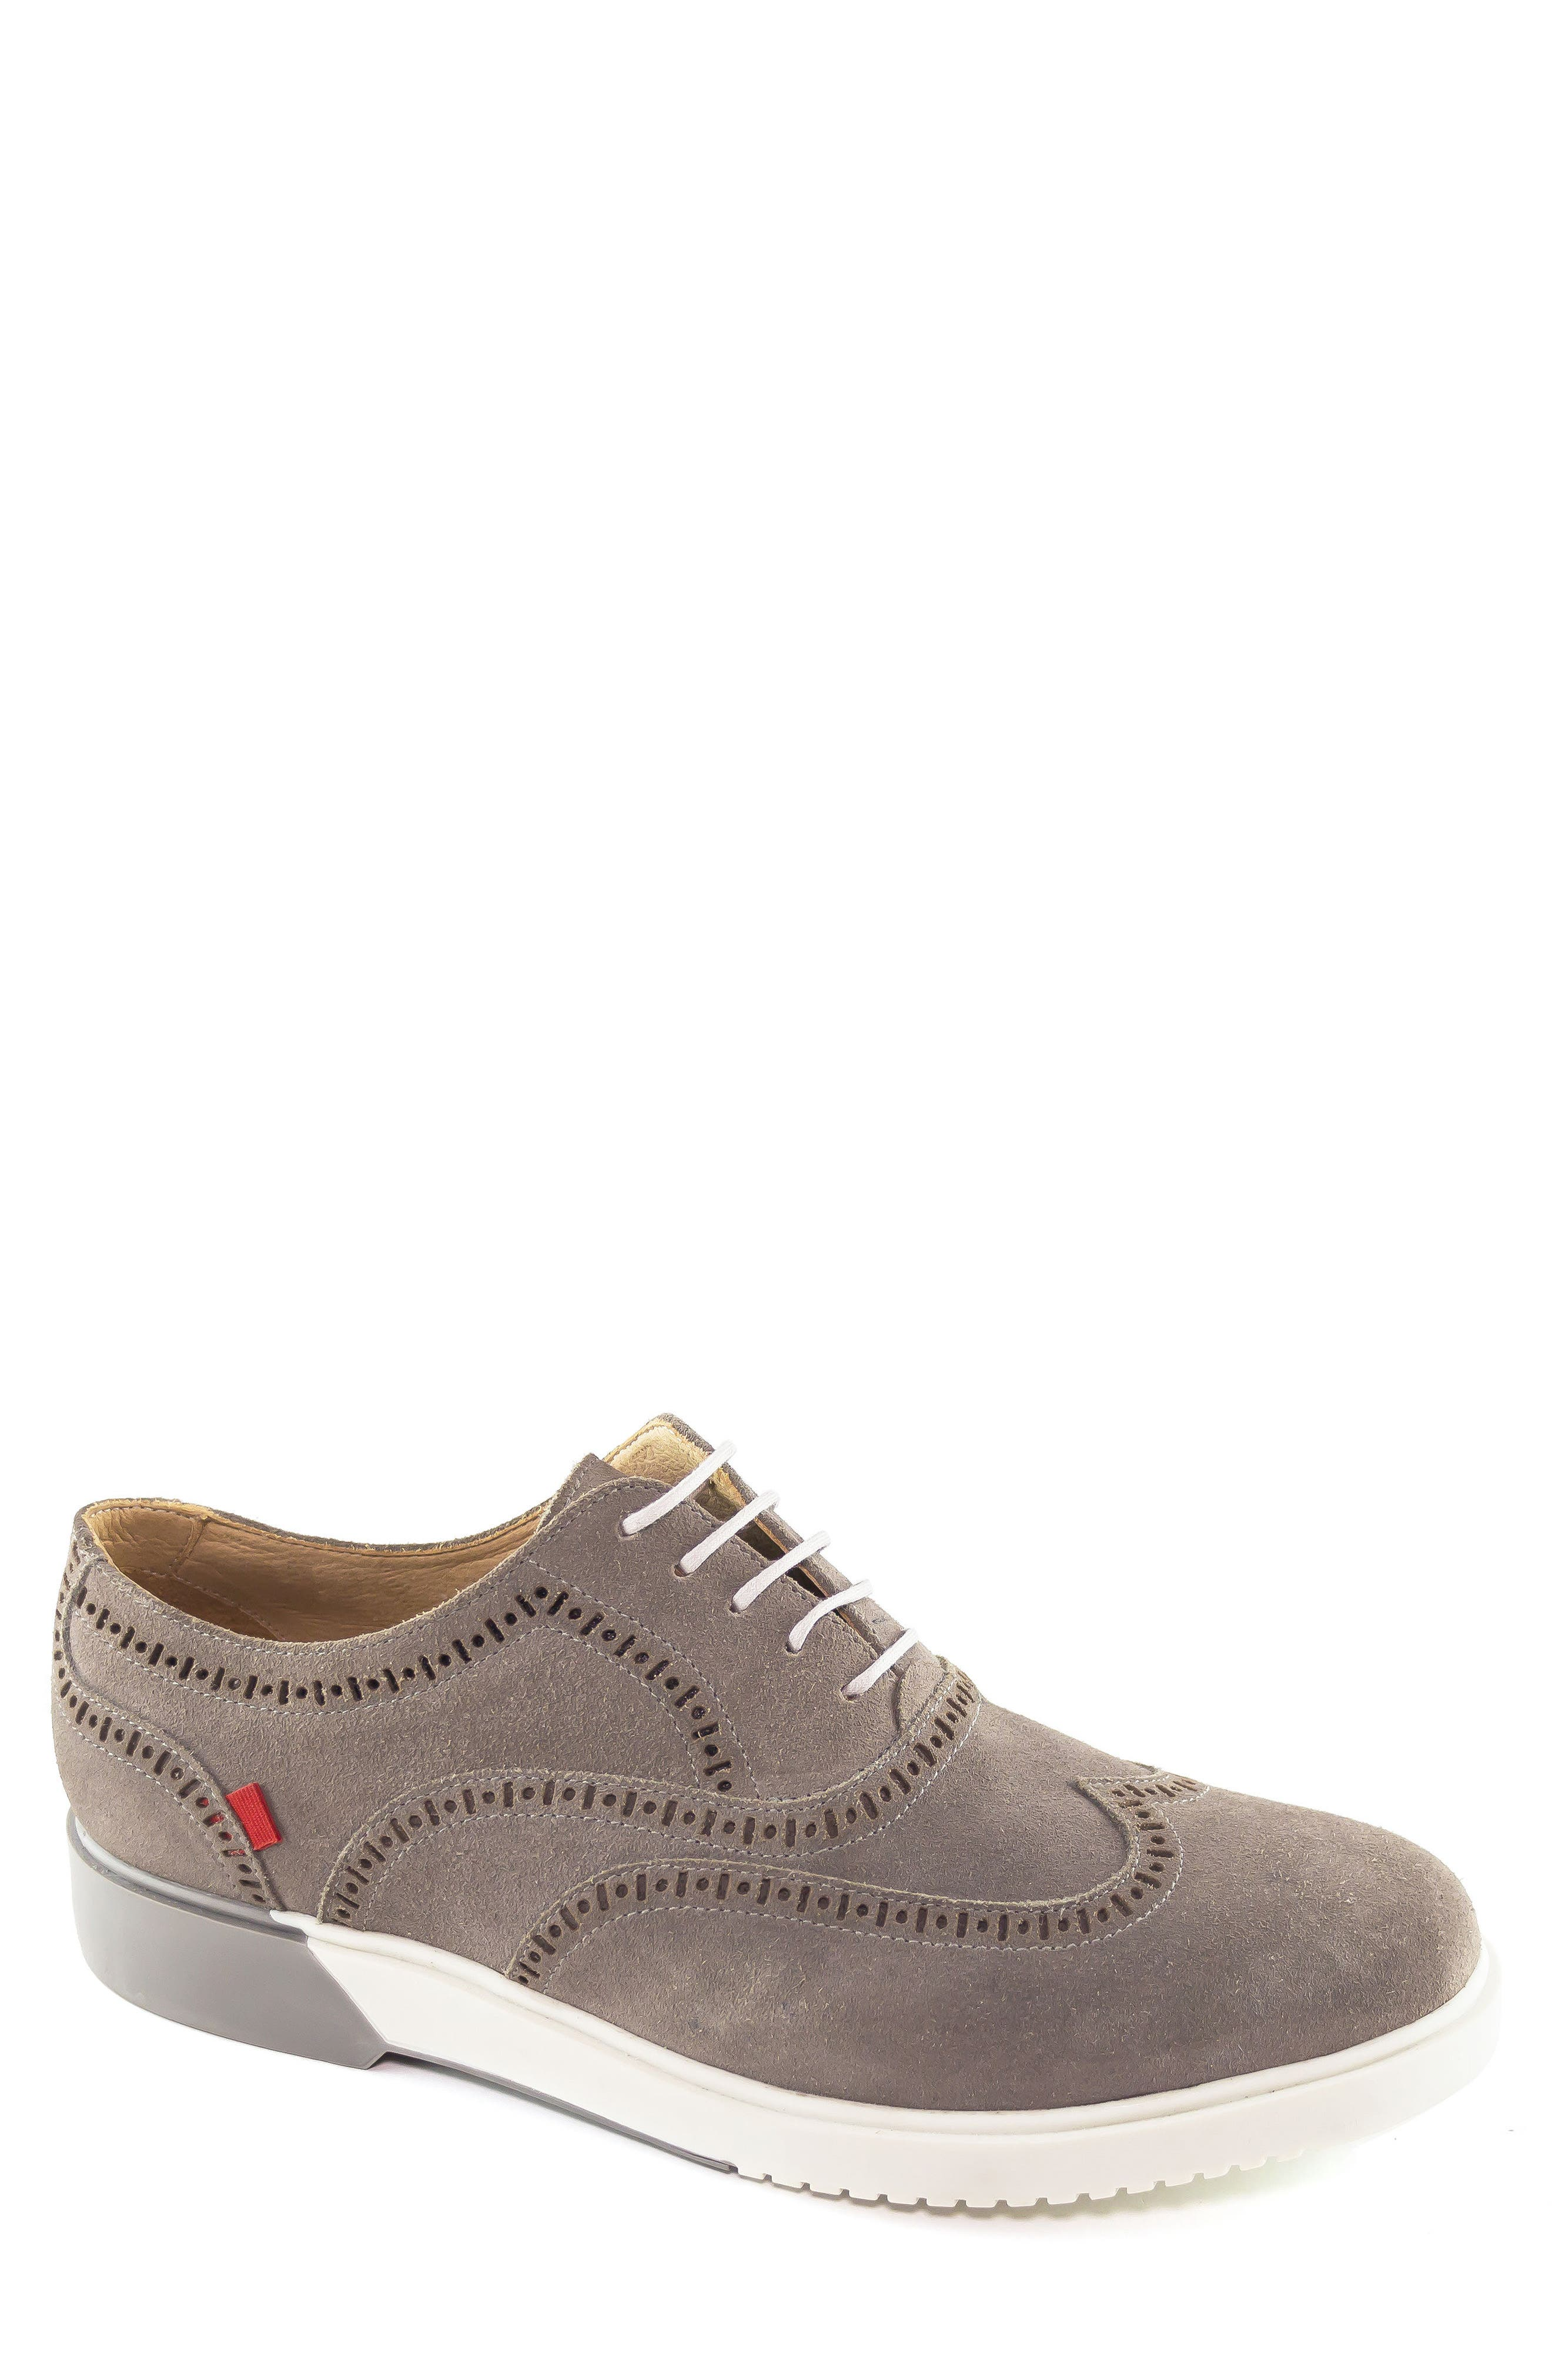 5th Ave Wingtip Sneaker,                             Main thumbnail 1, color,                             GREY SUEDE